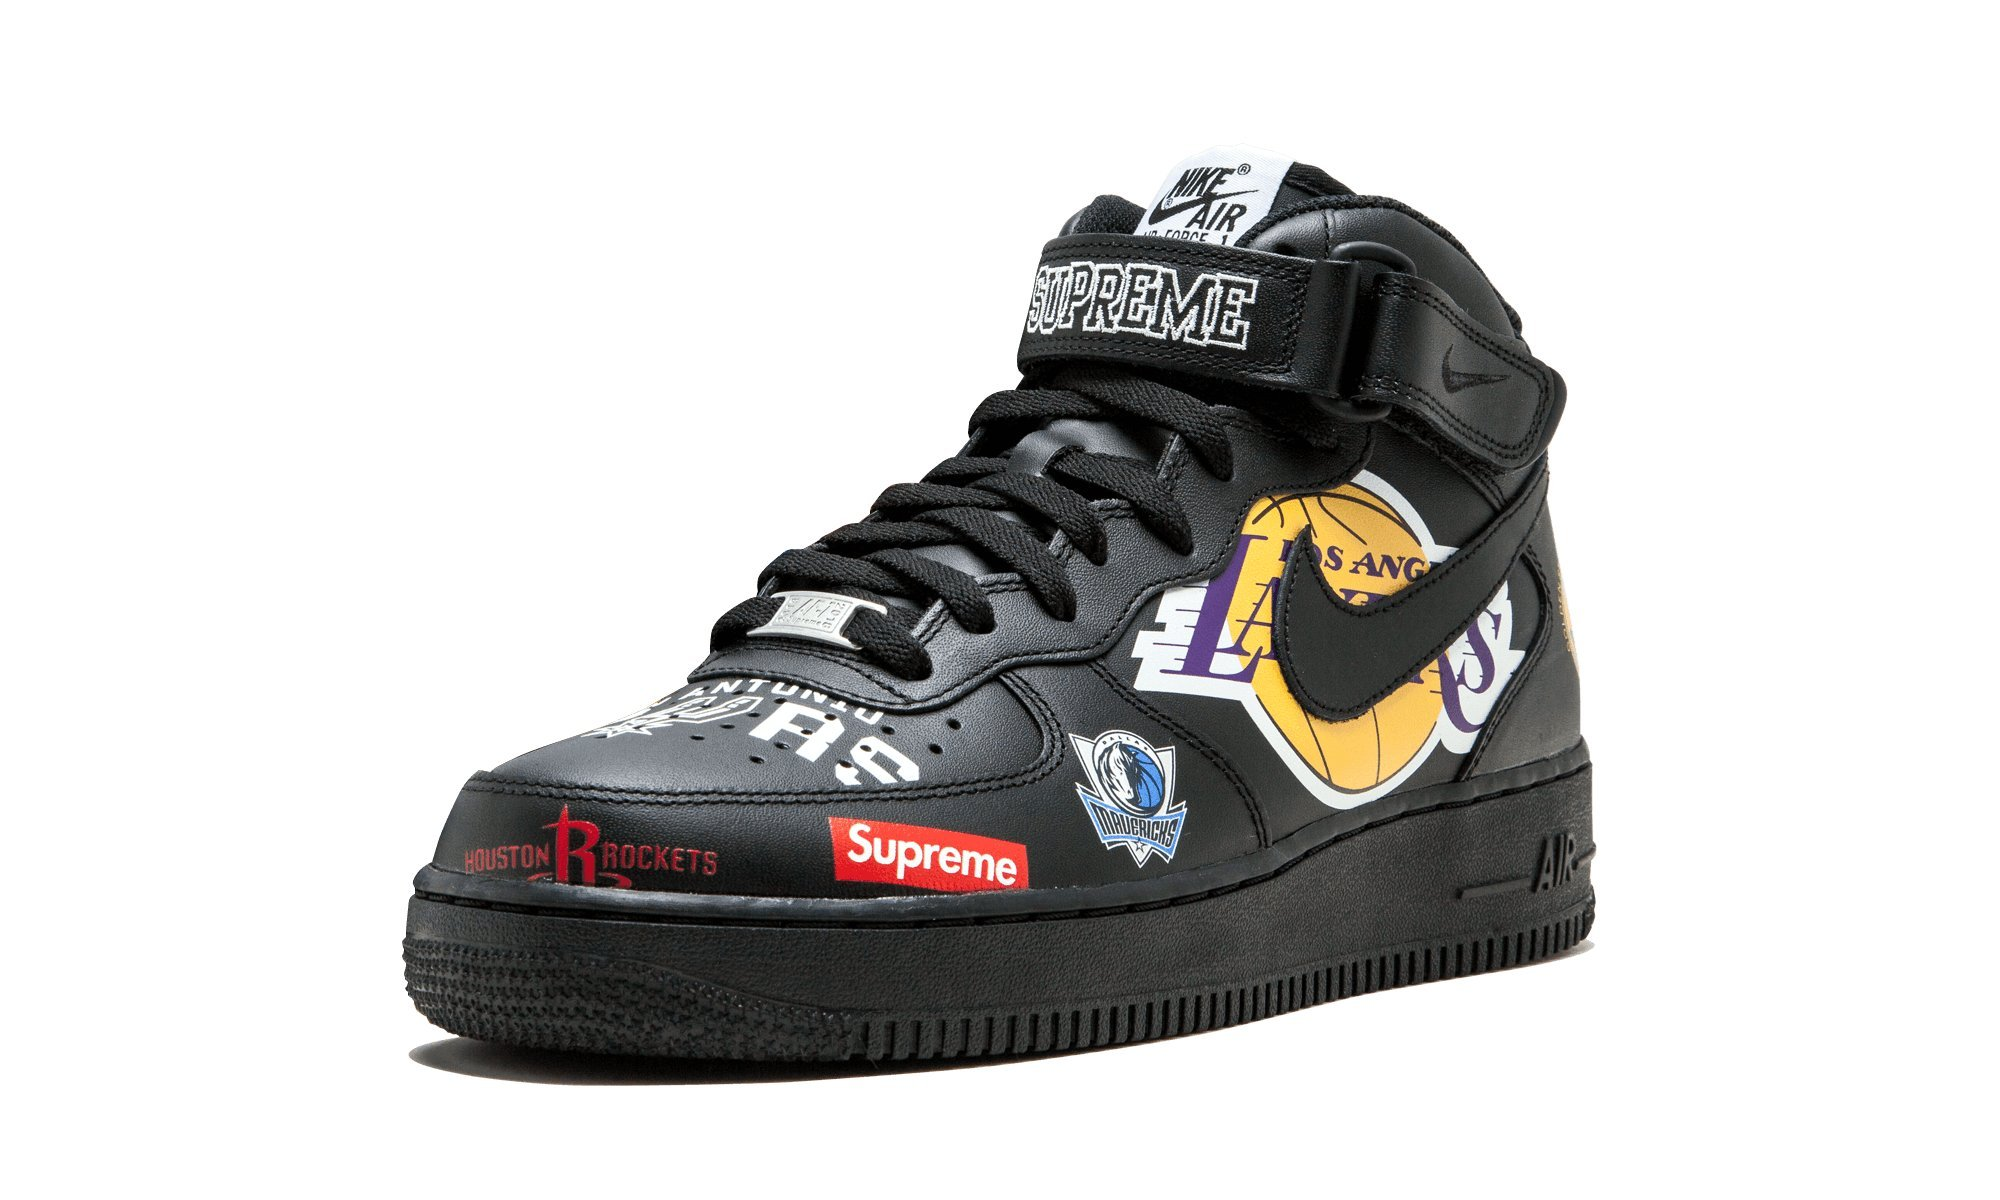 detailed look 1bd31 4f399 Galleon - Nike Air Force 1 Mid  07   Supreme - AQ8017 001